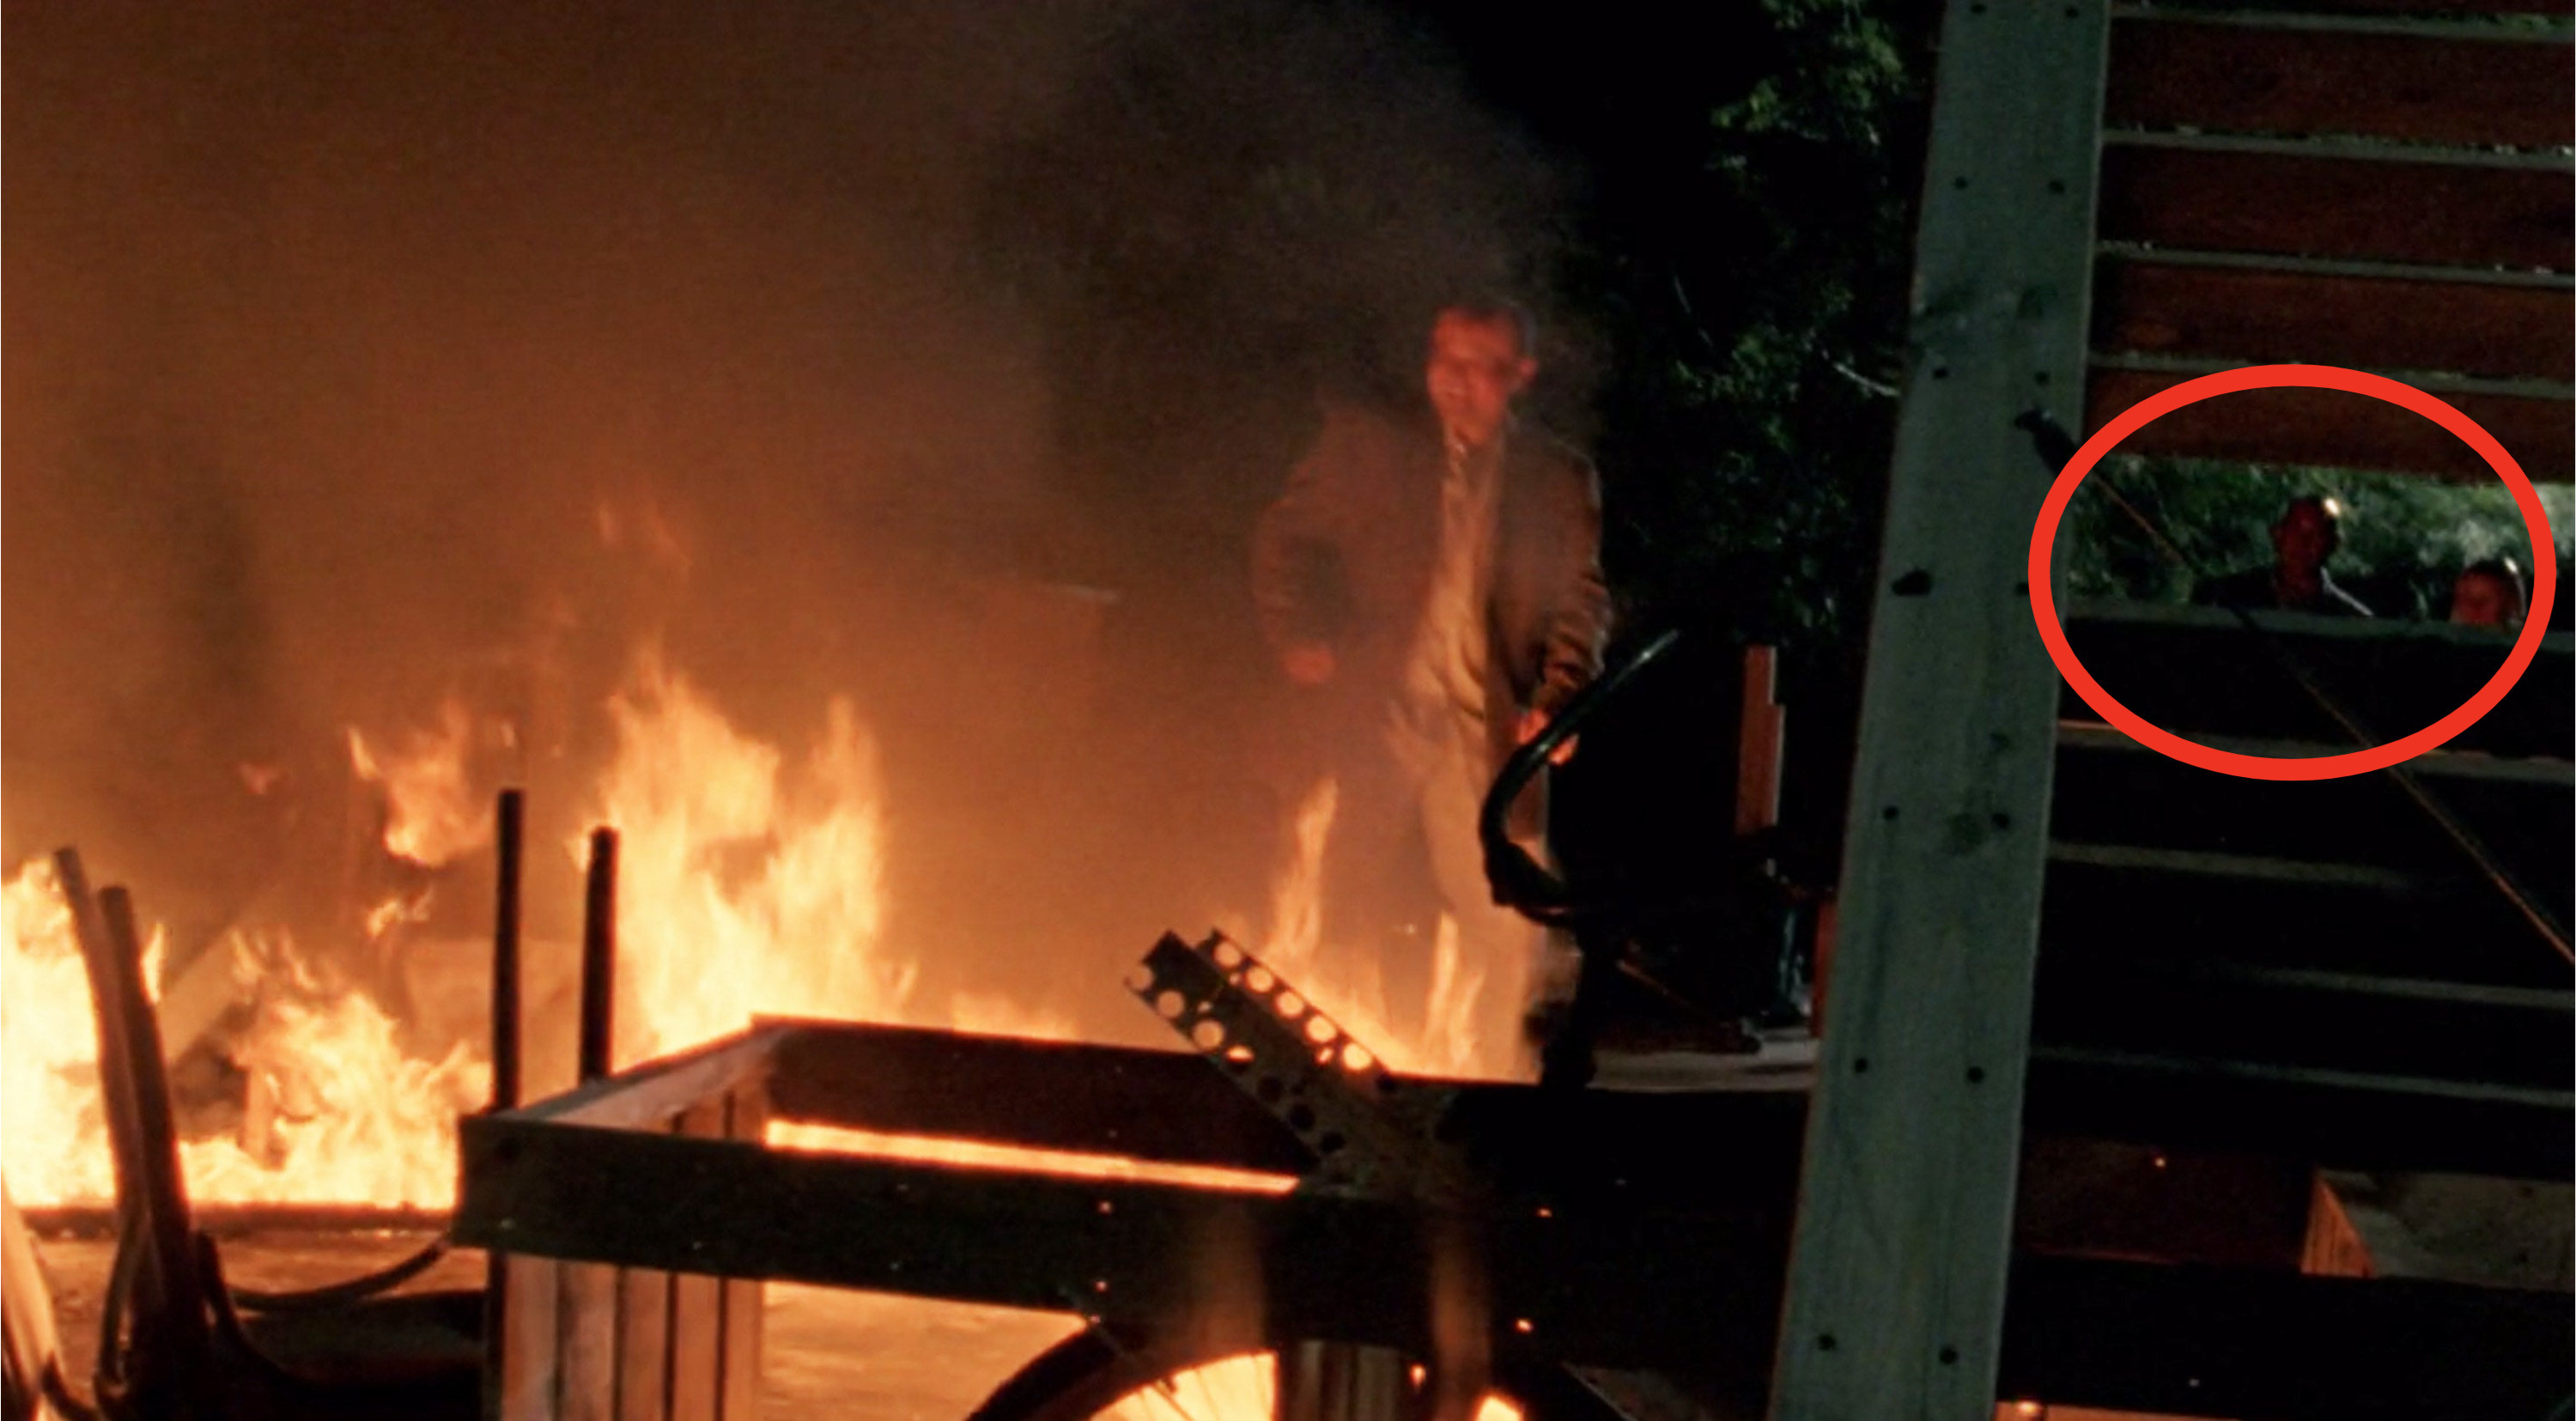 Keith standing behind a huge fire and crew members visible in the background